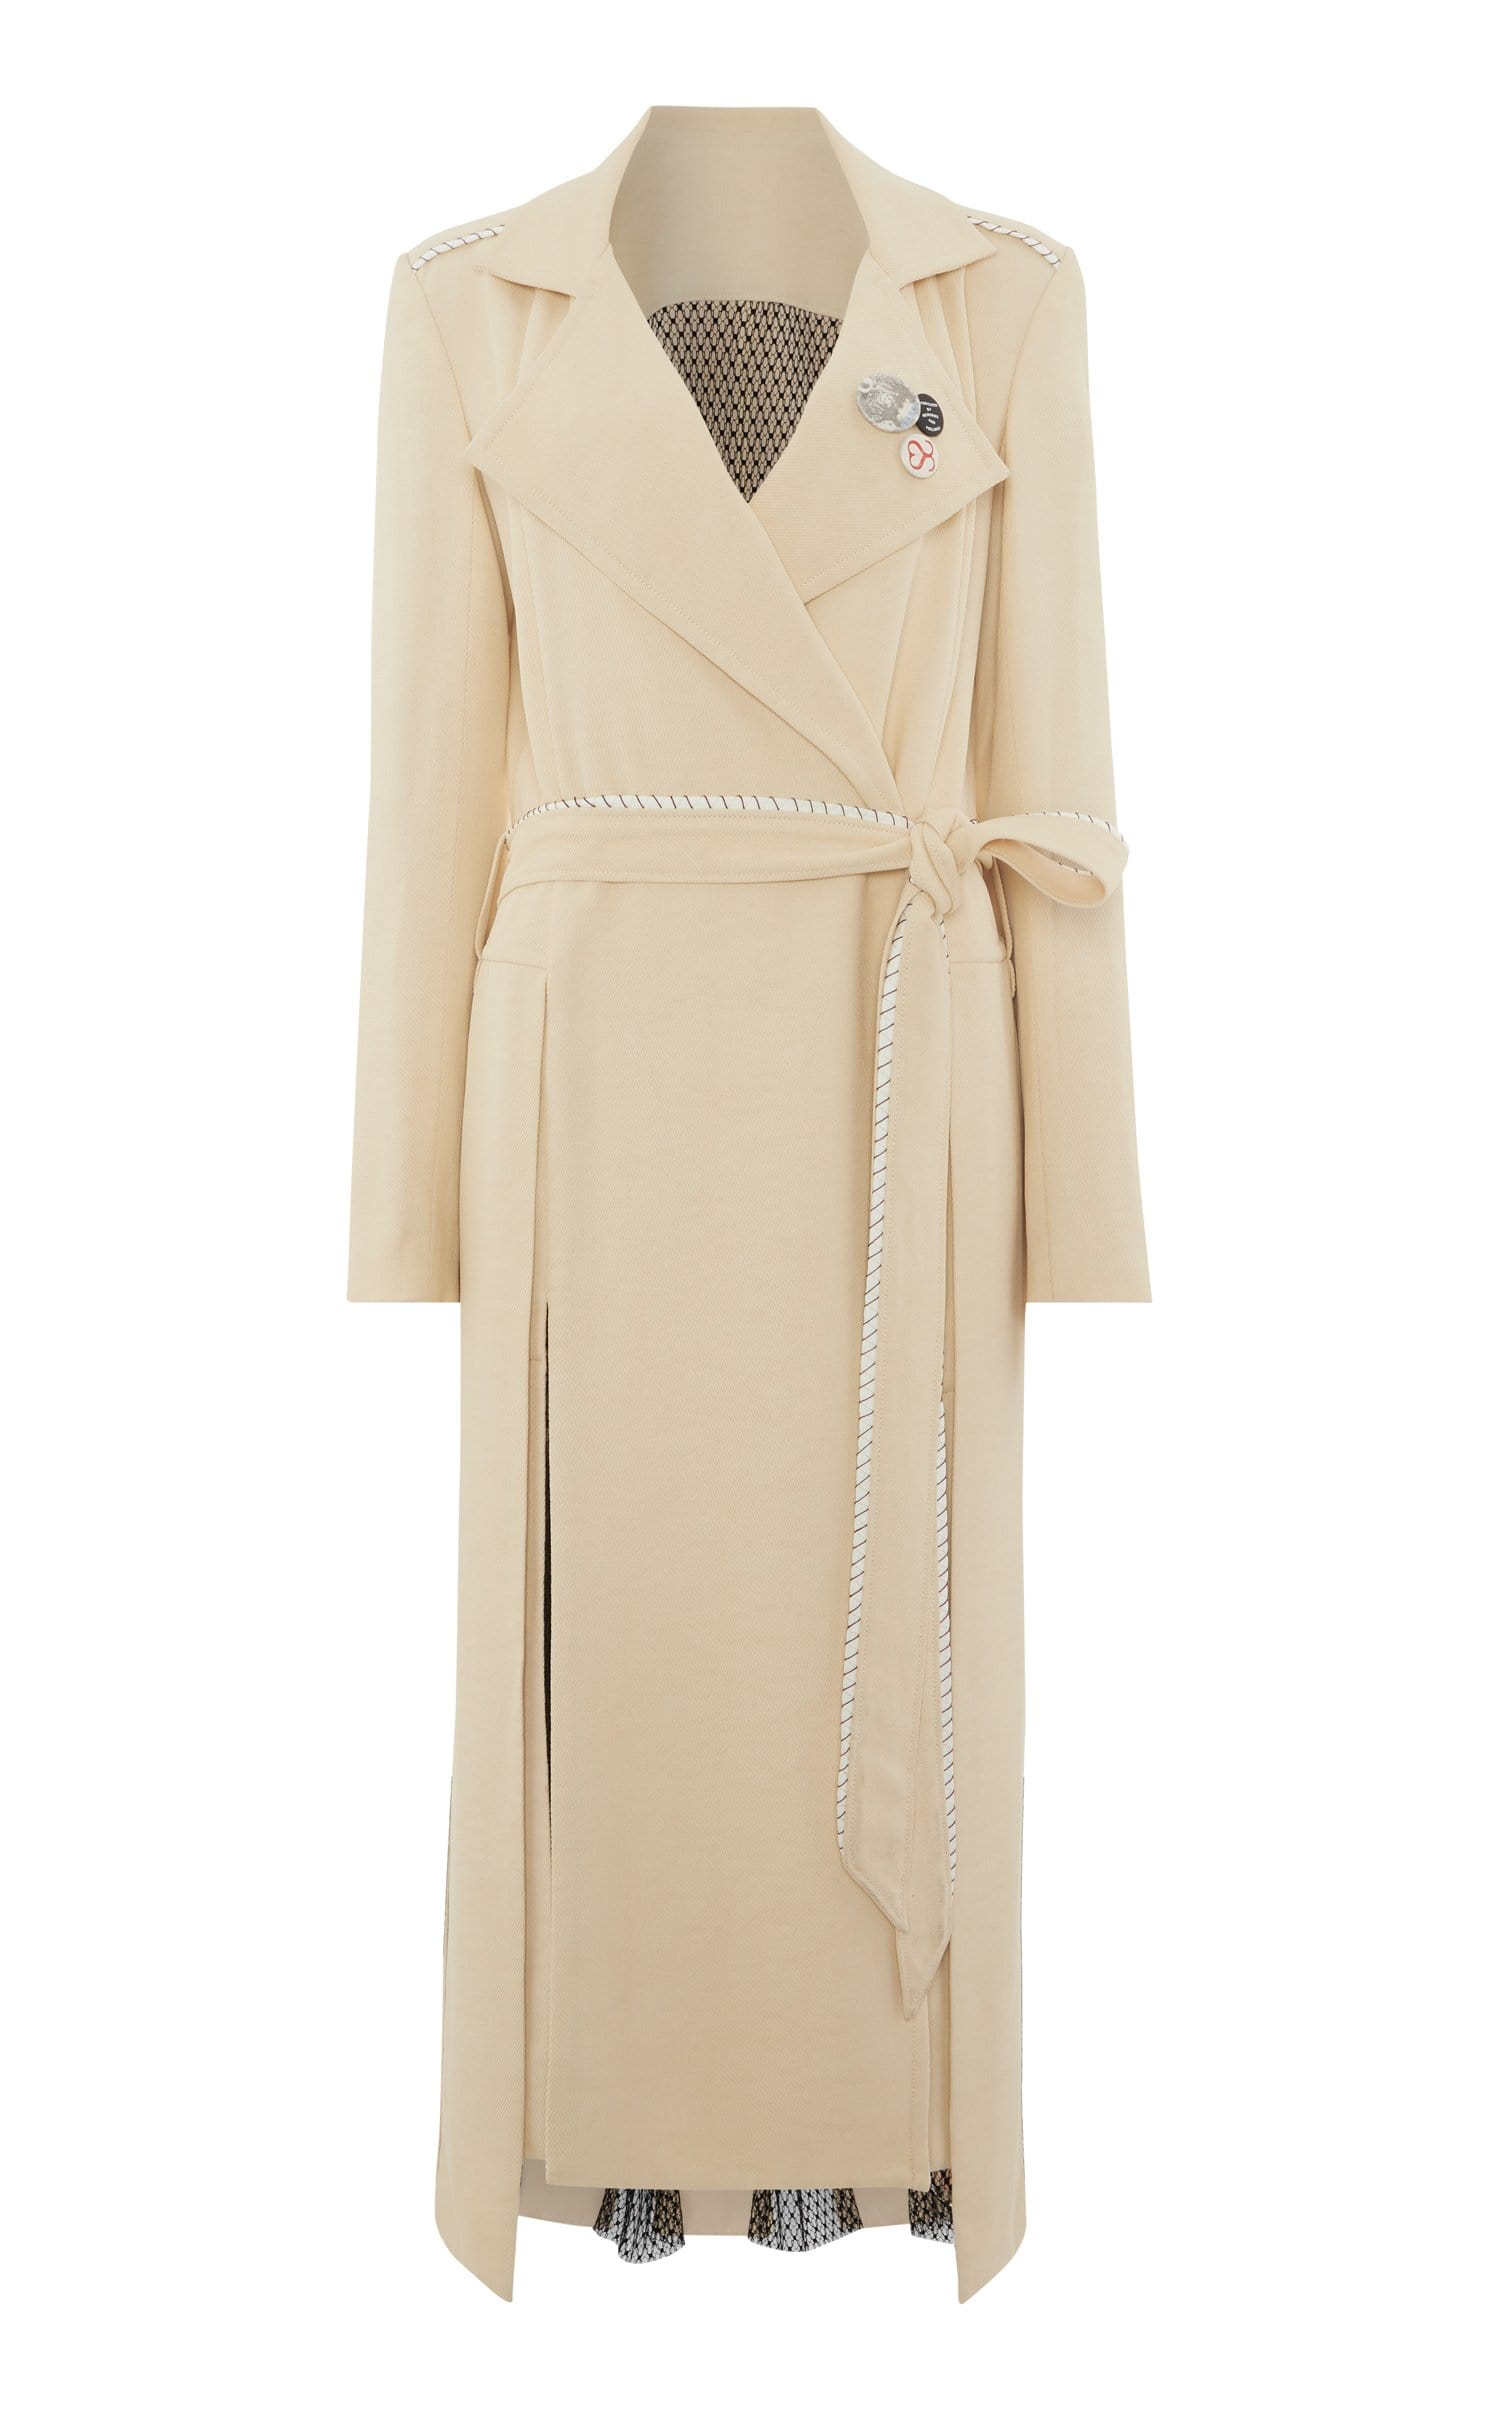 Drummond Coat In Oatmeal/Black from Roland Mouret